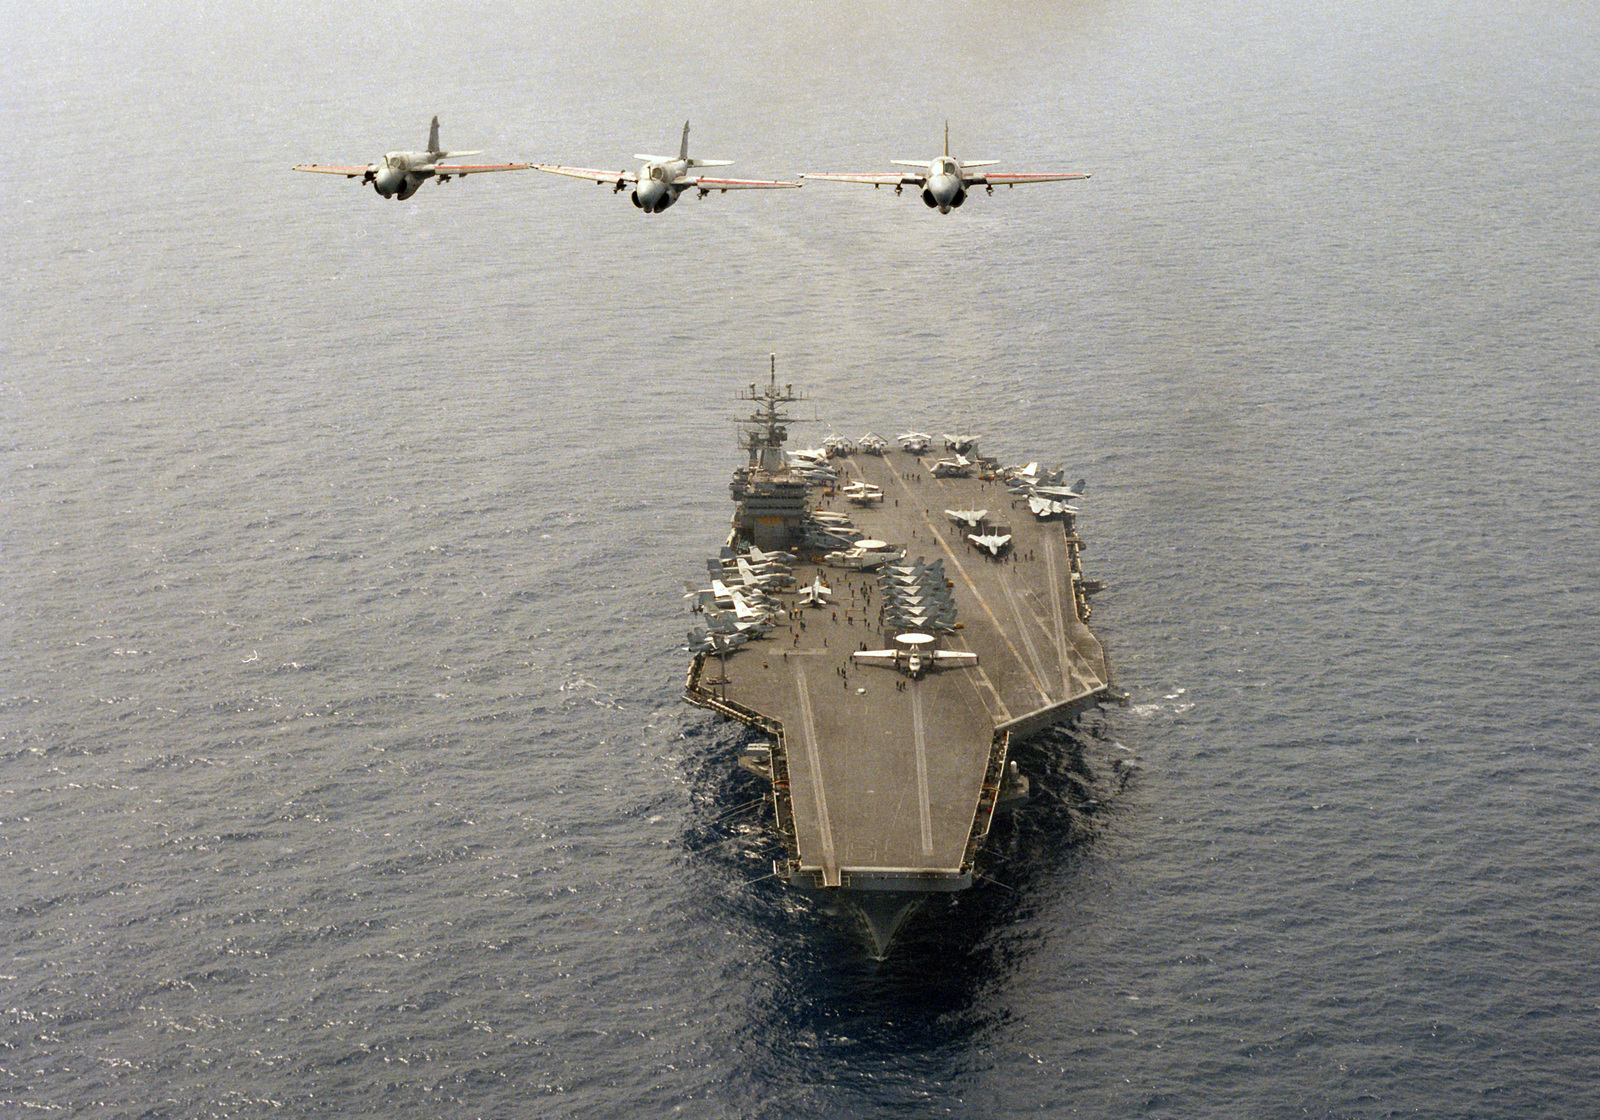 An air-to-air front view of three Attack Squadron 34 (VA-34) A-6E Intruder aircraft in formation over the nuclear-powered aircraft carrier USS DWIGHT D. EISENHOWER (CVN 69).  Carrier Air Wing 7 (CVW-7 is assigned to the EISENHOWER, which is in the Mediter